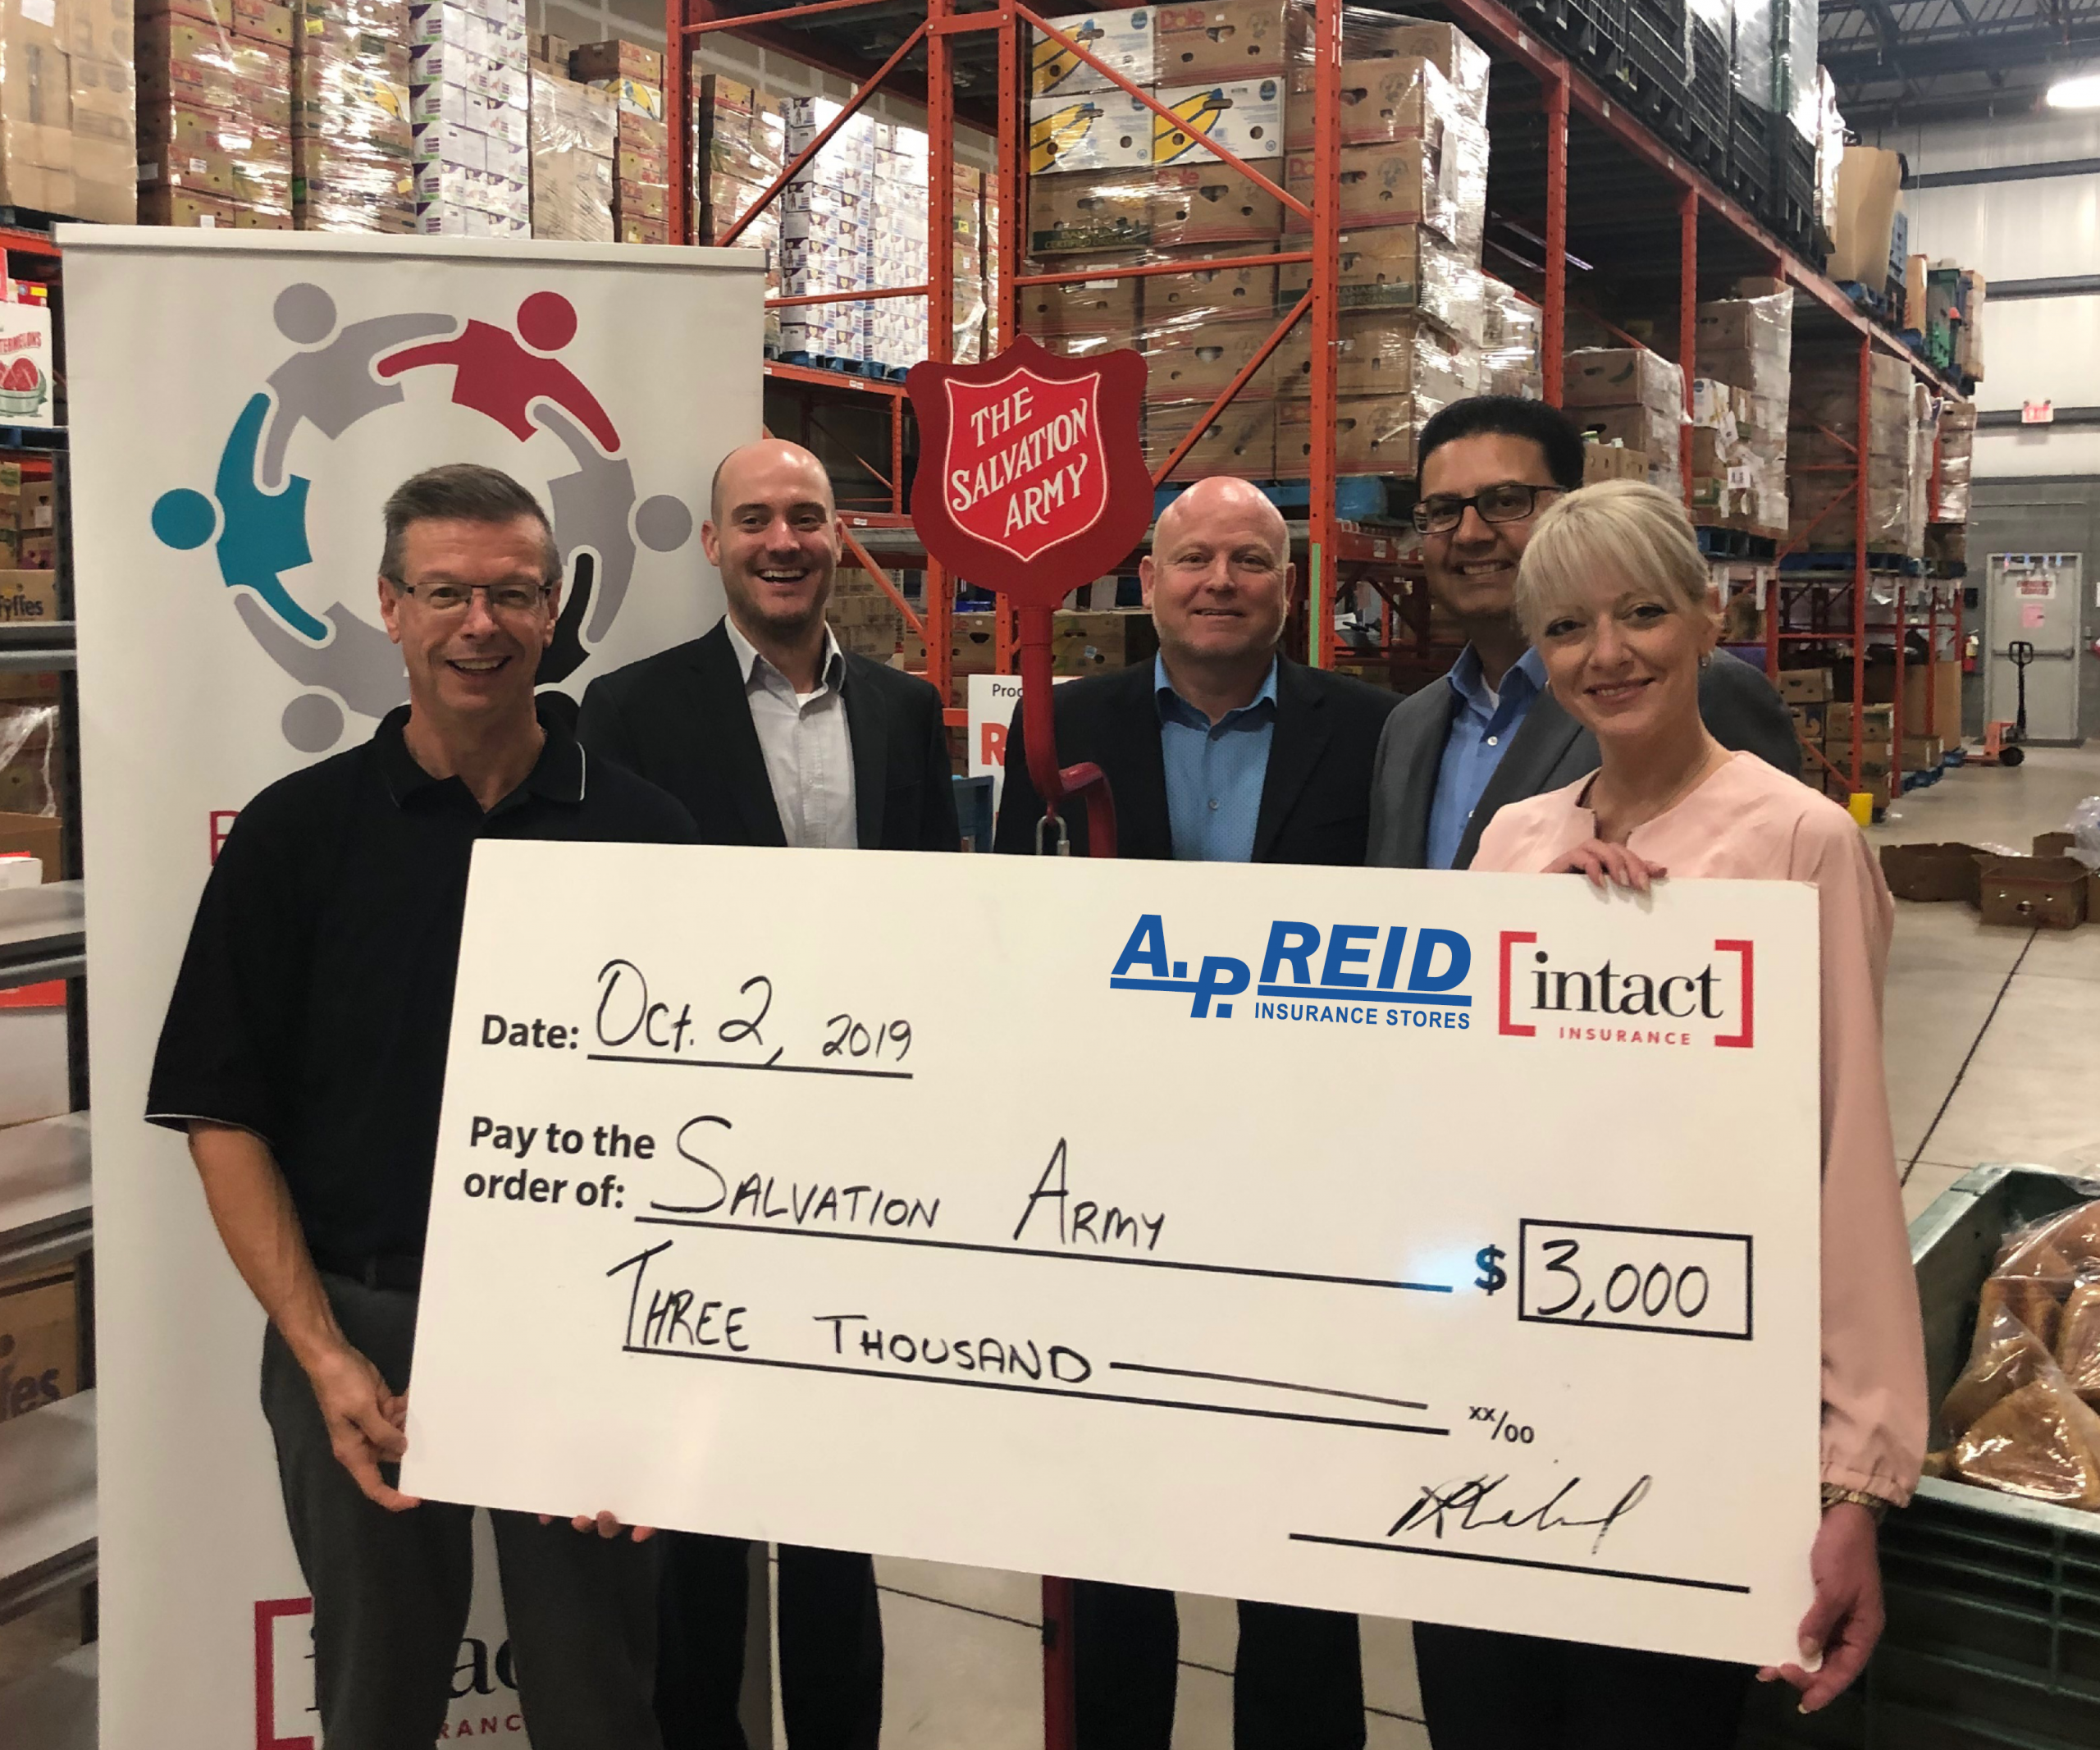 A.P. Reid & Intact Present Donation to Burlington Community & Family Services